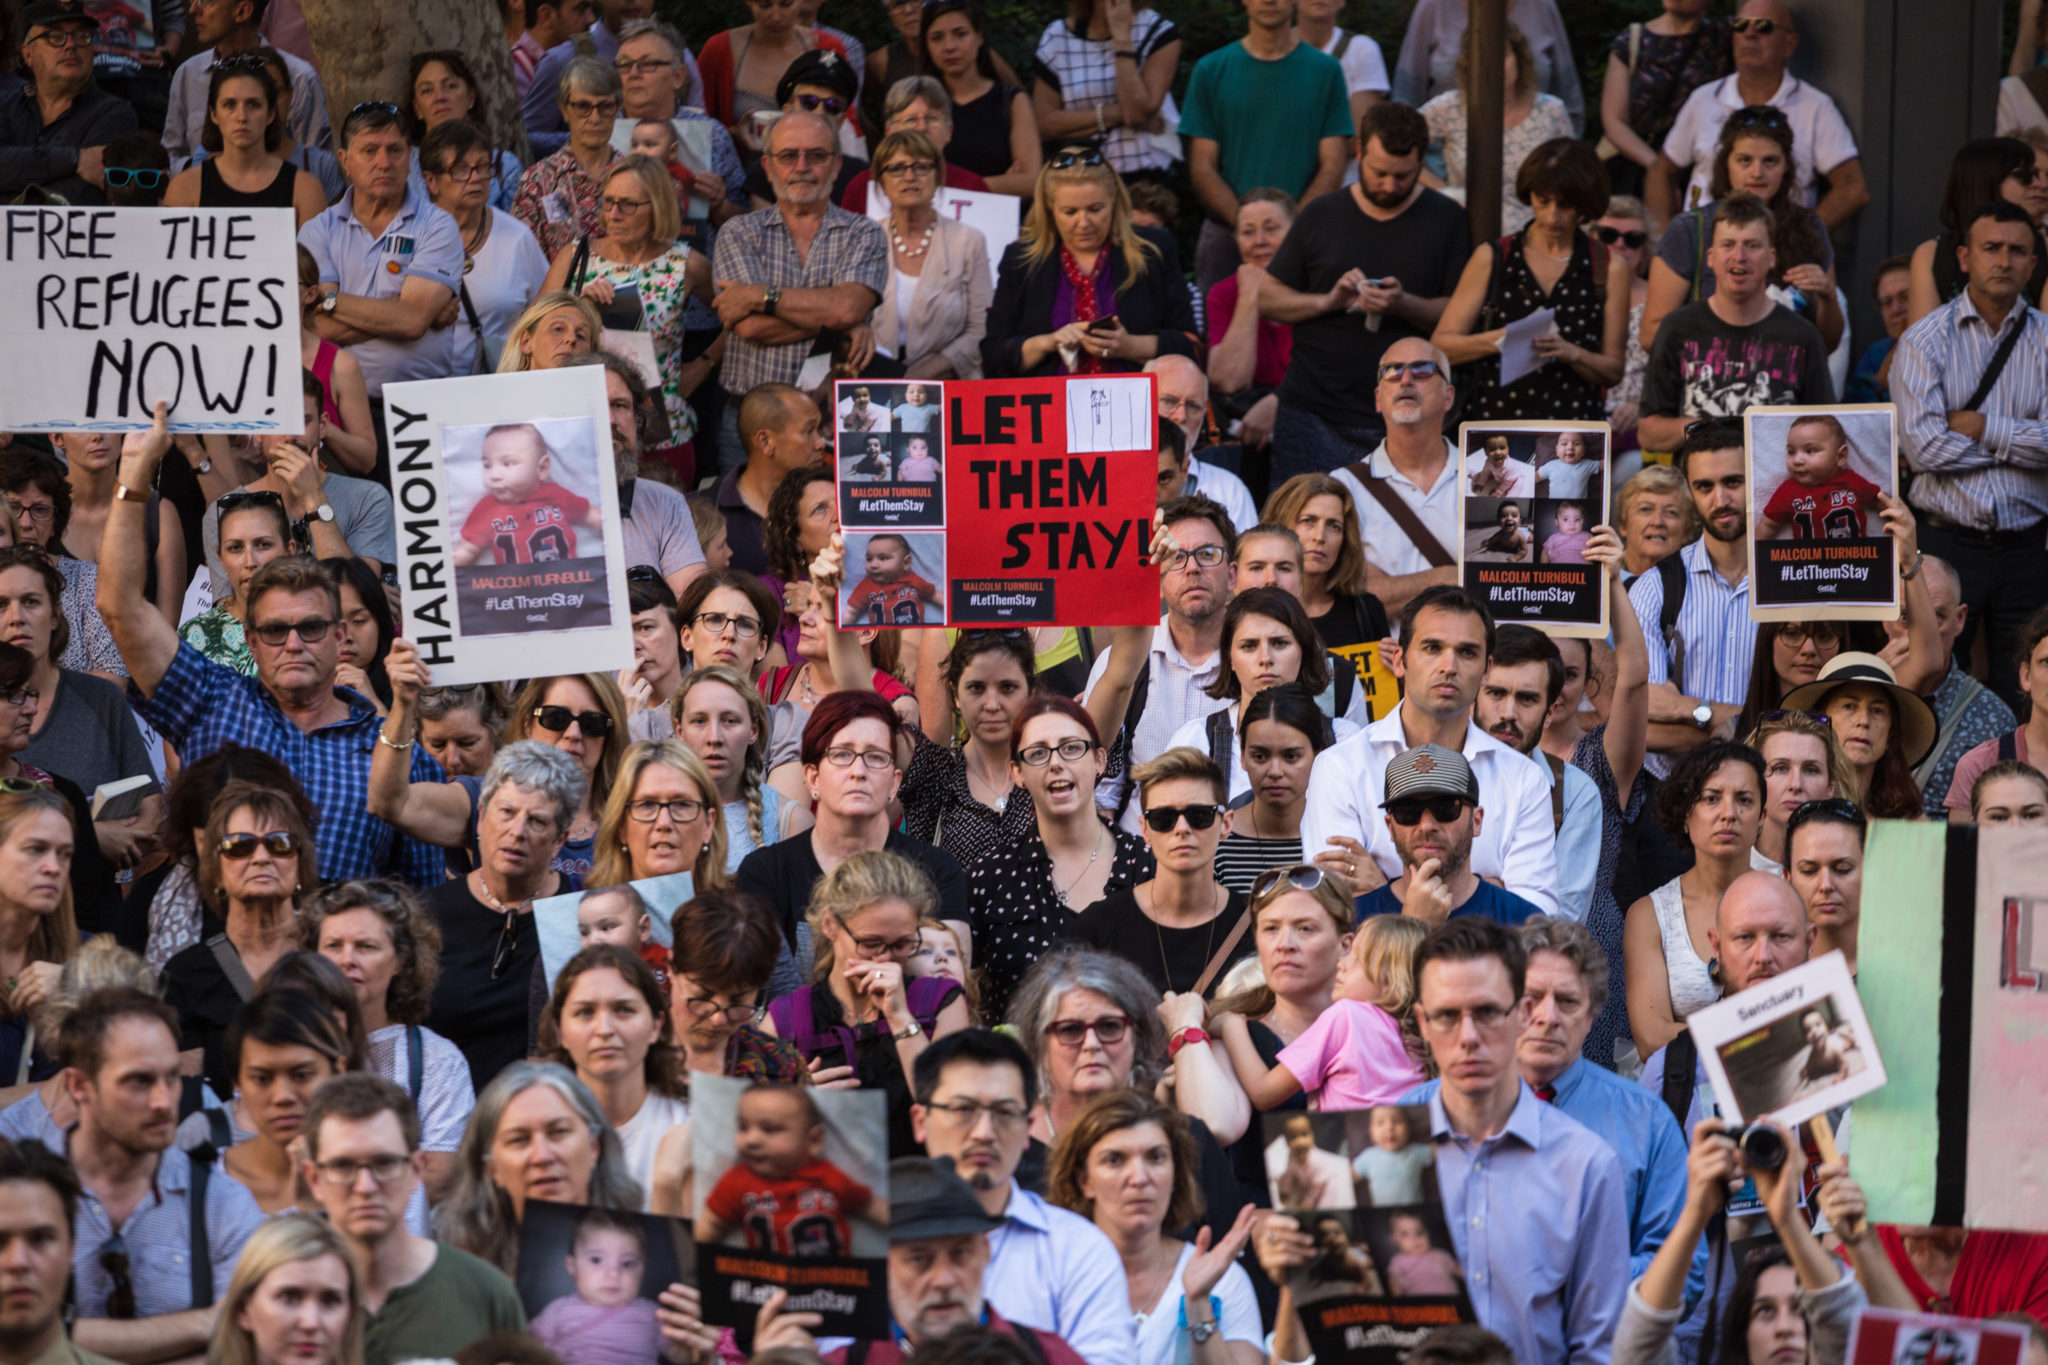 Australia / Papua New Guinea: Immigration Dept.'s claims about shooting on Manus Island refuted